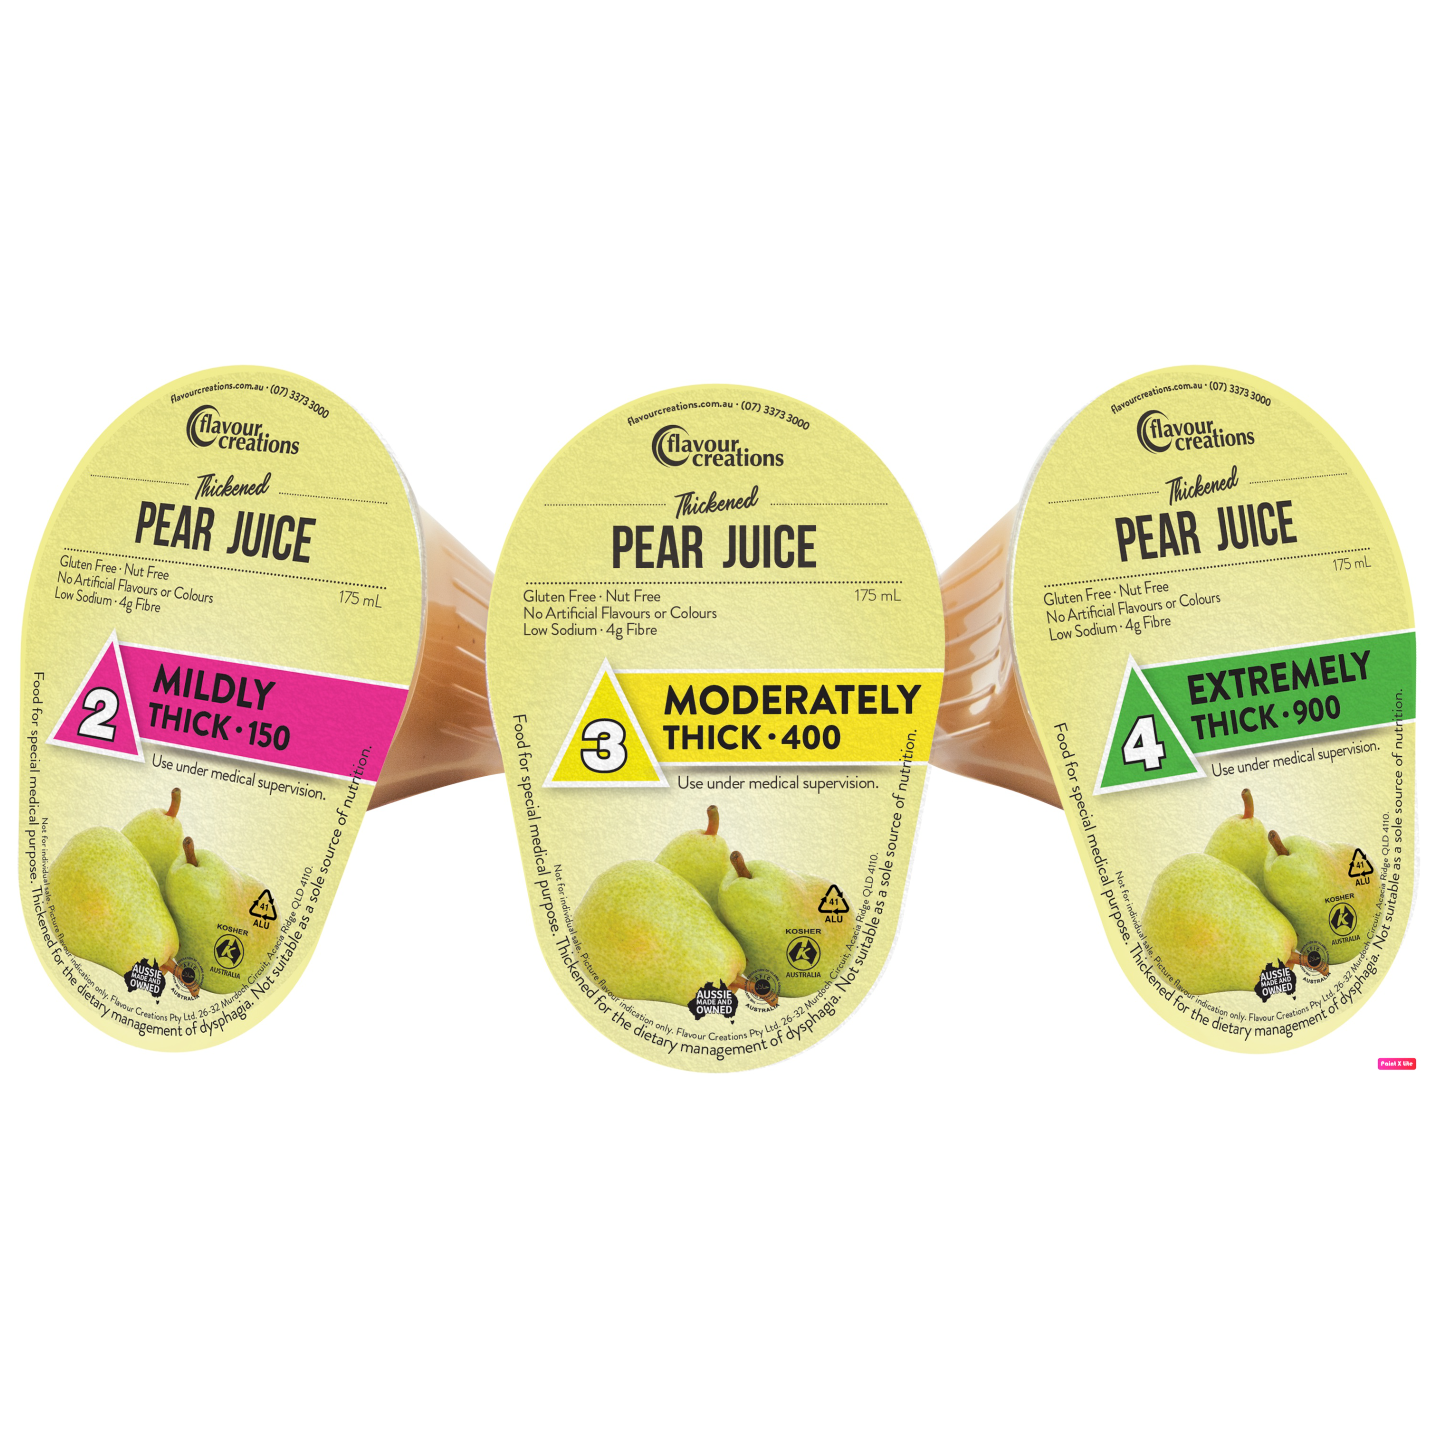 Pear Juice Level 3 Moderately Thick 400